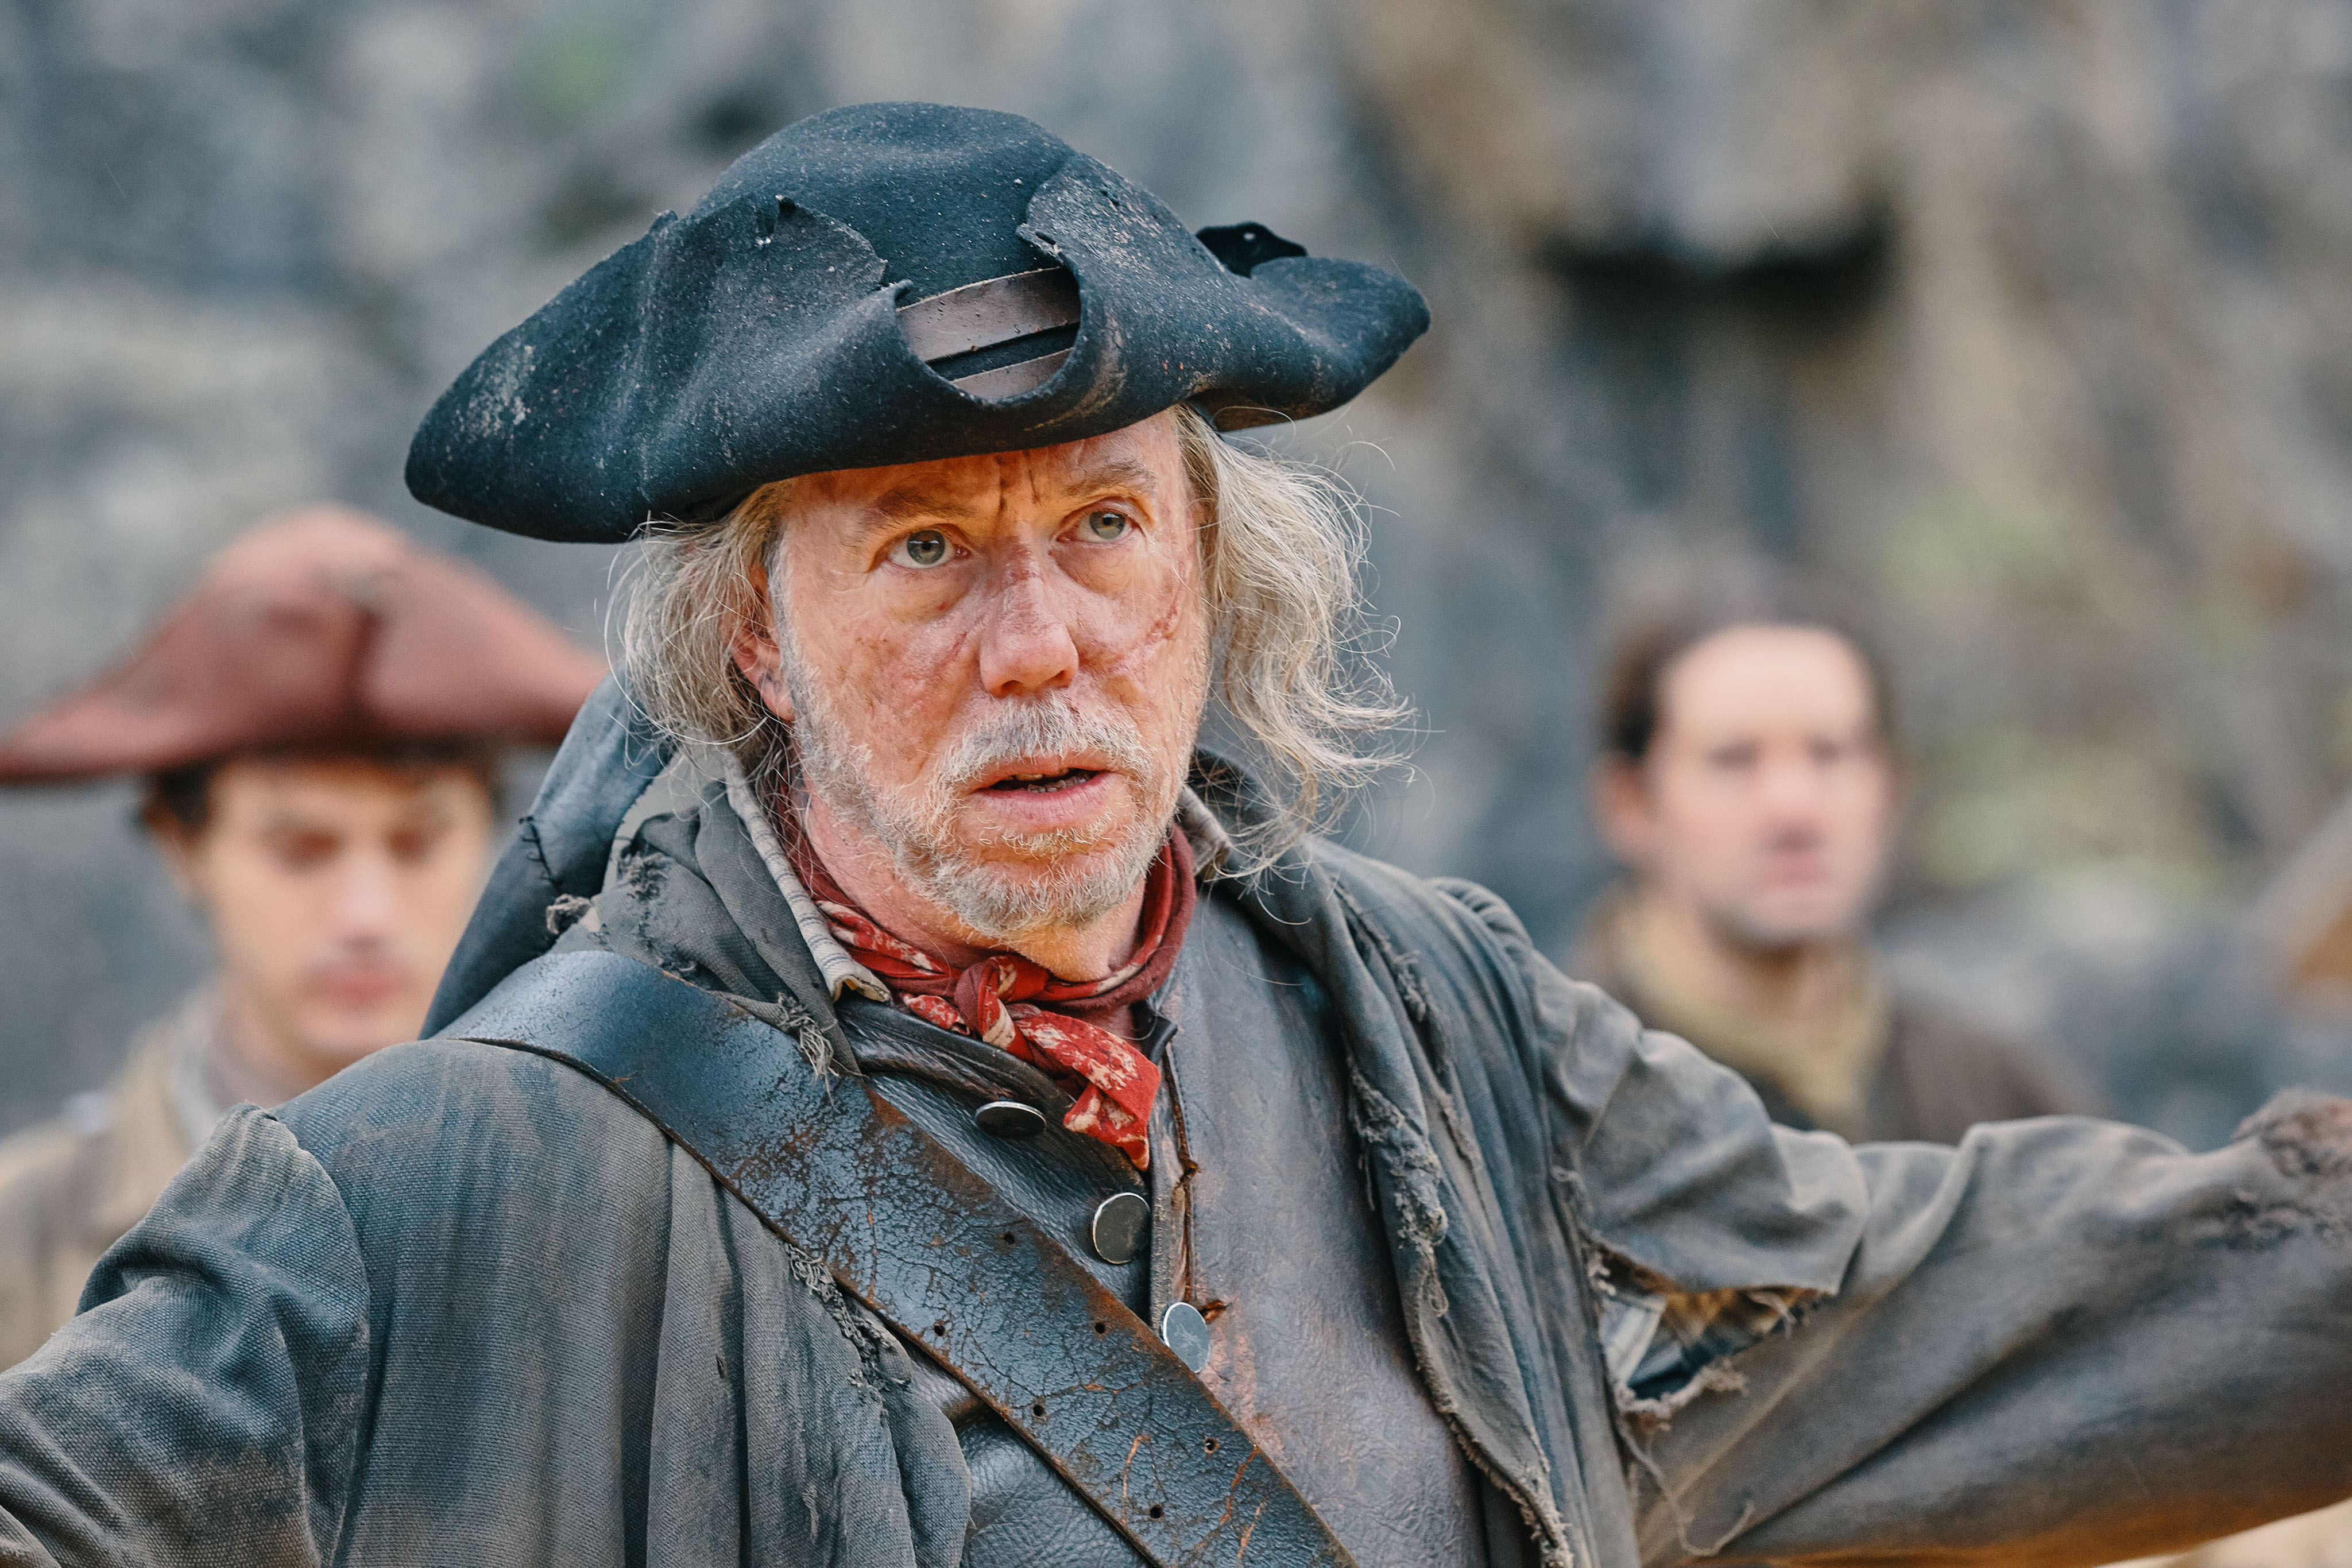 WARNING: Embargoed for publication until 00:00:01 on 12/06/2018 - Programme Name: Poldark - Series 4 - TX: n/a - Episode: Poldark S4 - EP2 (No. 2) - Picture Shows: ***EMBARGOED 12TH JUNE 2018*** Tholly Tregirls (SEAN GILDER) - (C) Mammoth Screen - Photographer: Mike Hogan